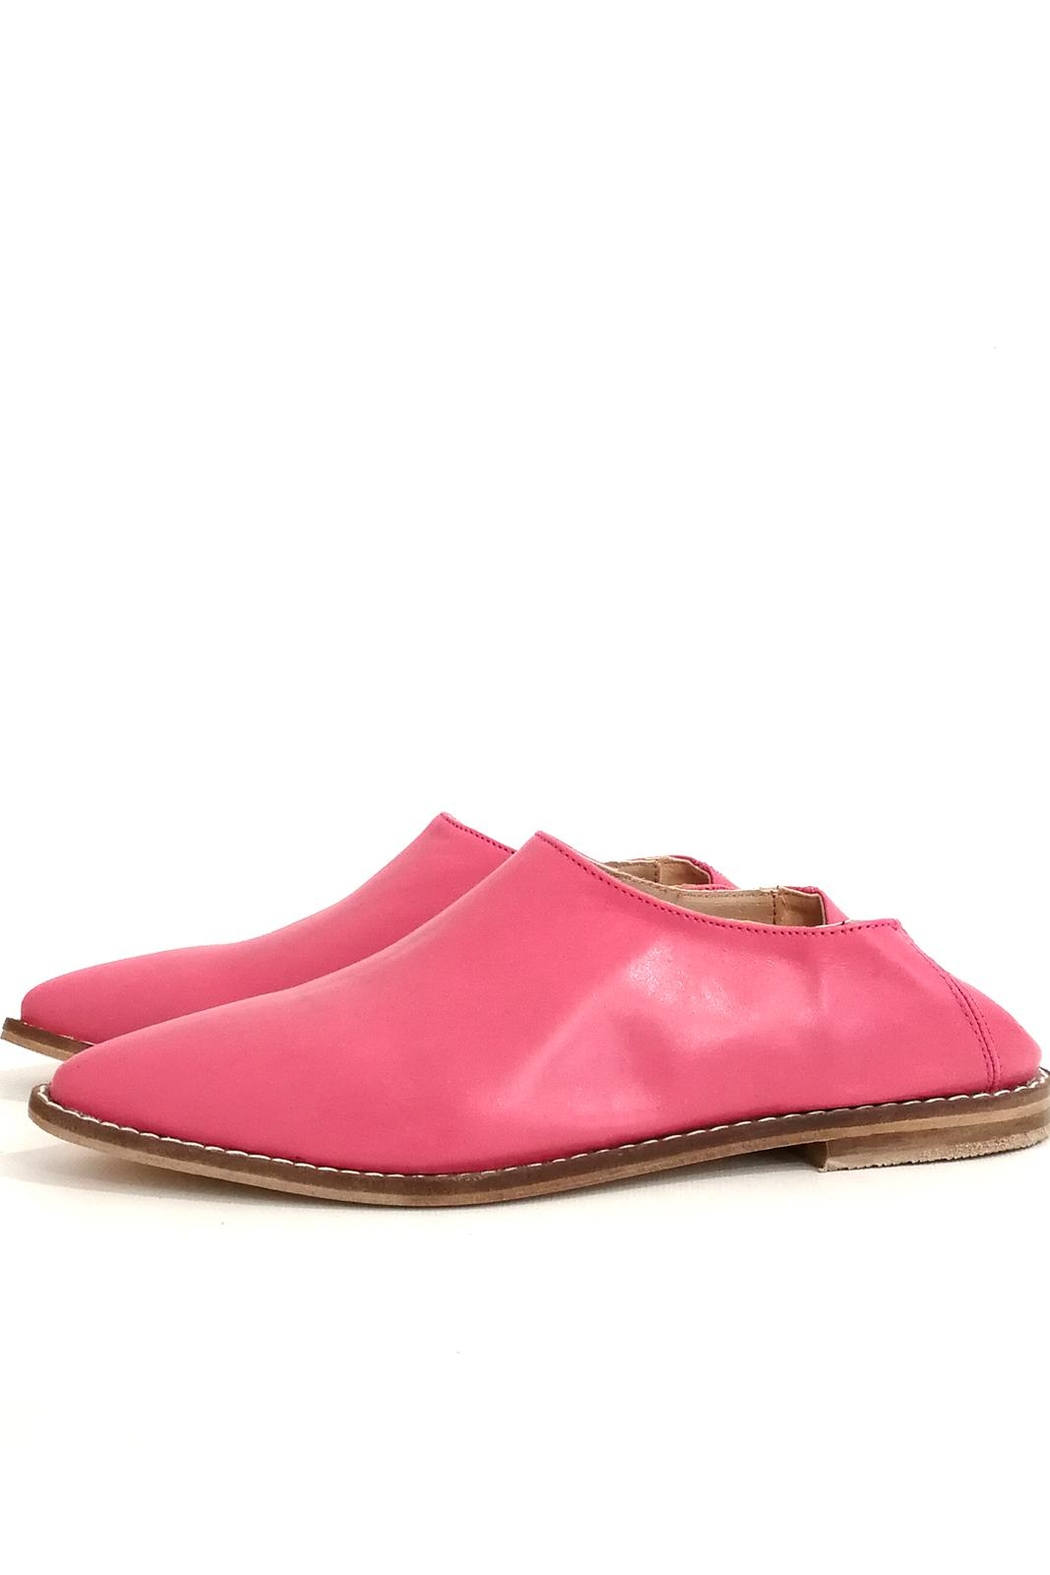 MIYE COLLAZZO Pink Mule Shoes - Front Cropped Image